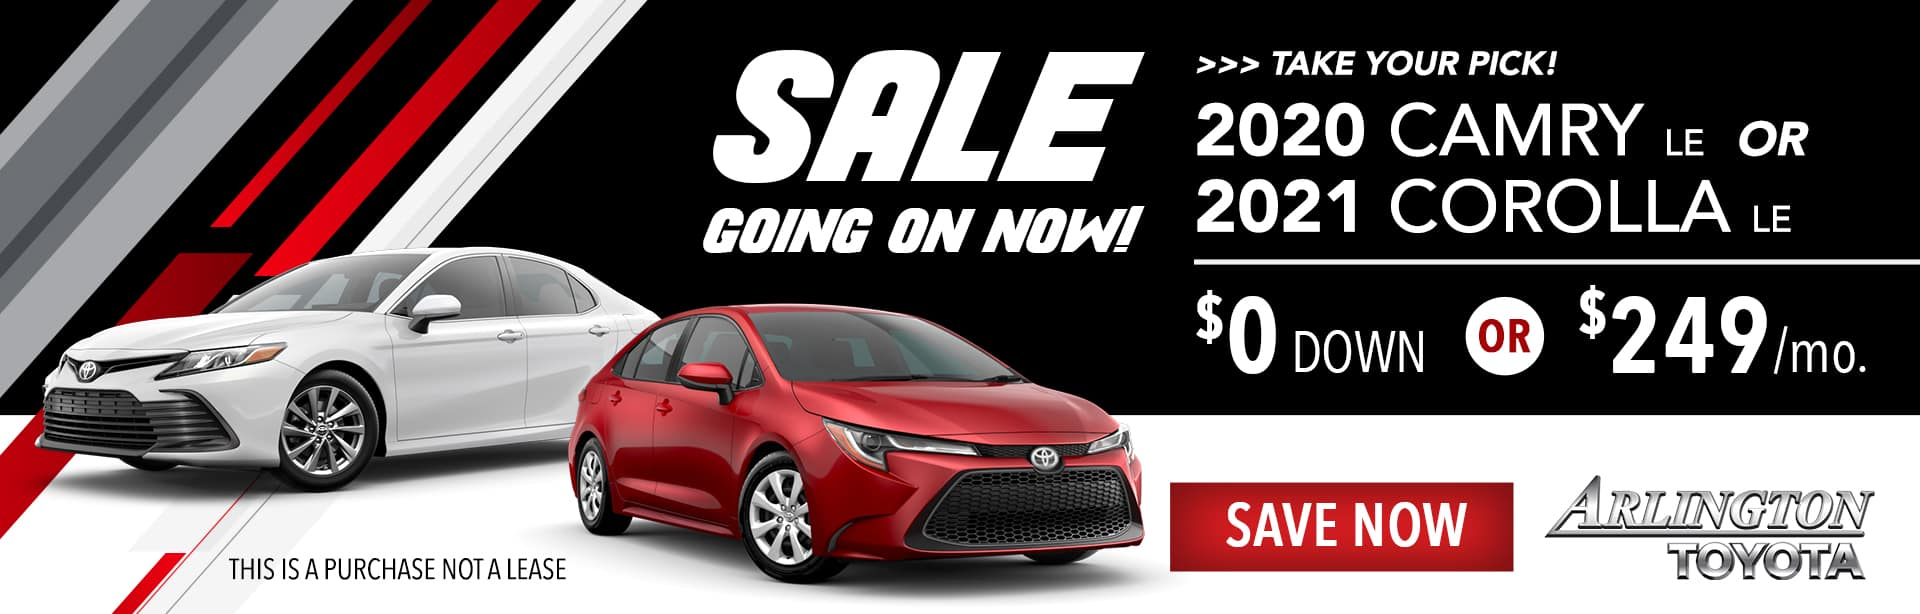 Camry Corolla SALE March2021 Homepage1920x614